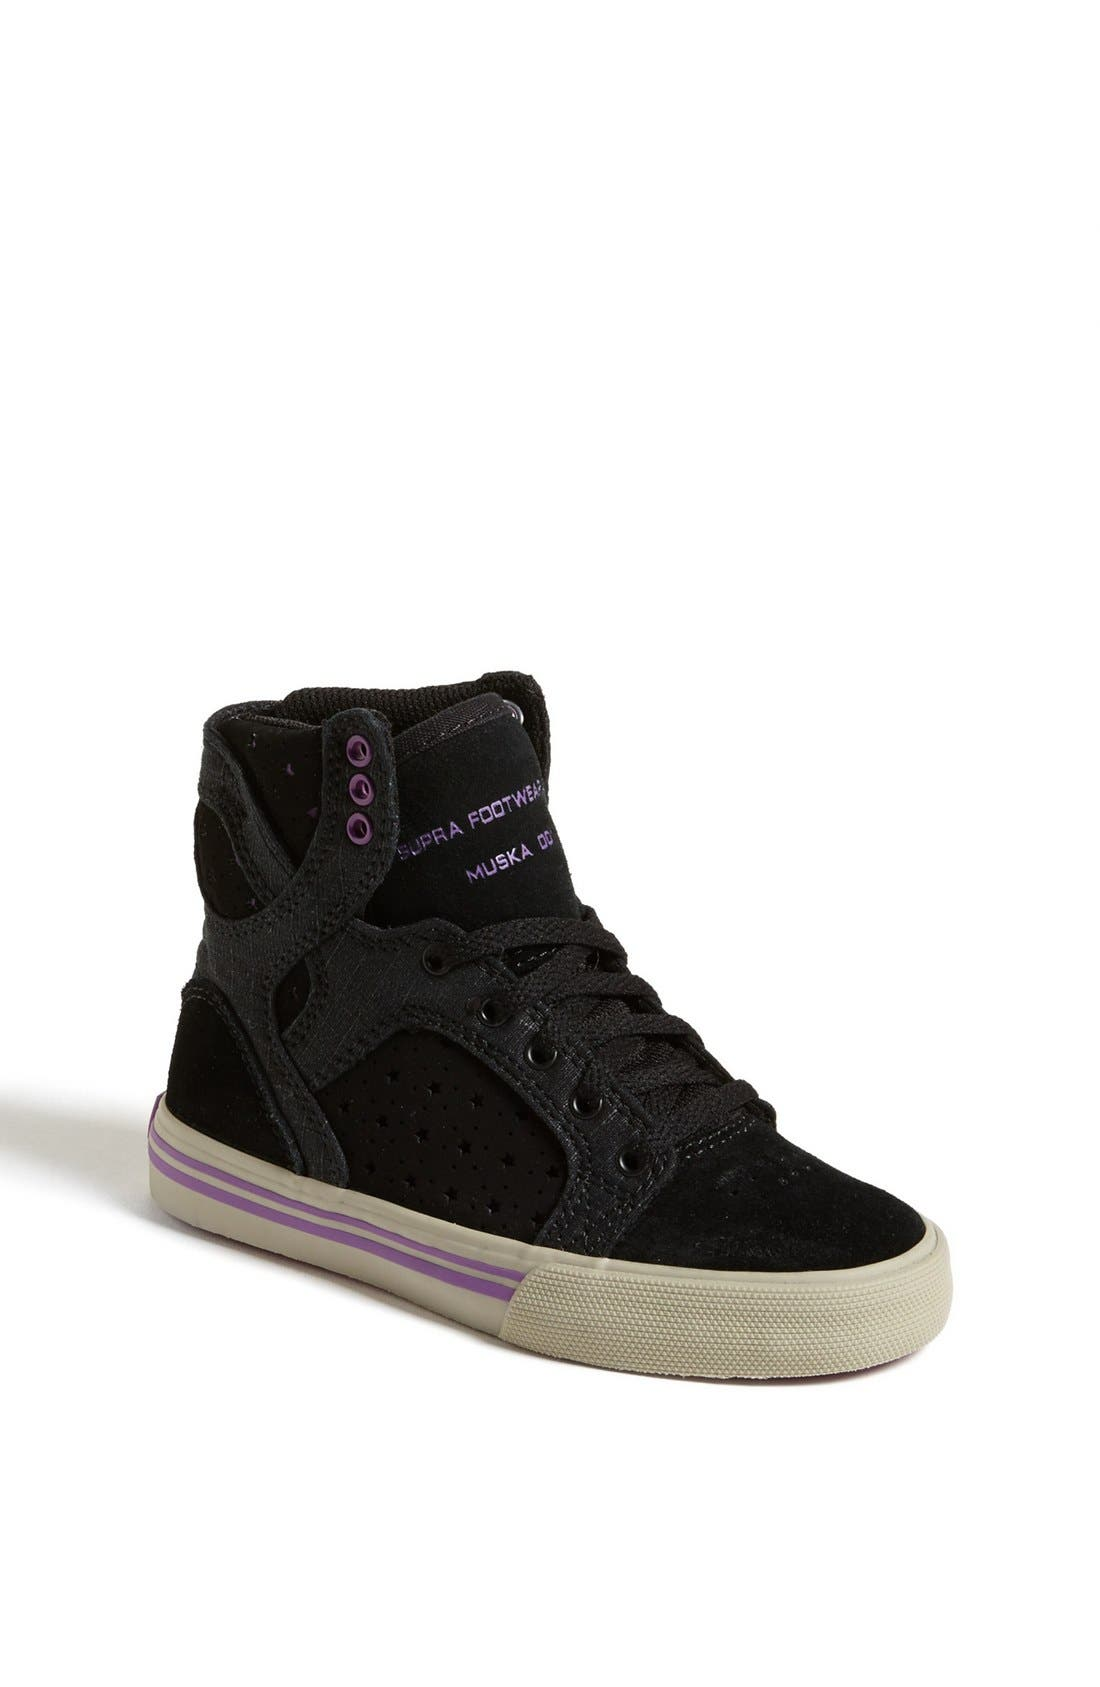 Alternate Image 1 Selected - Supra 'Skytop' Sneaker (Toddler, Little Kid & Big Kid)